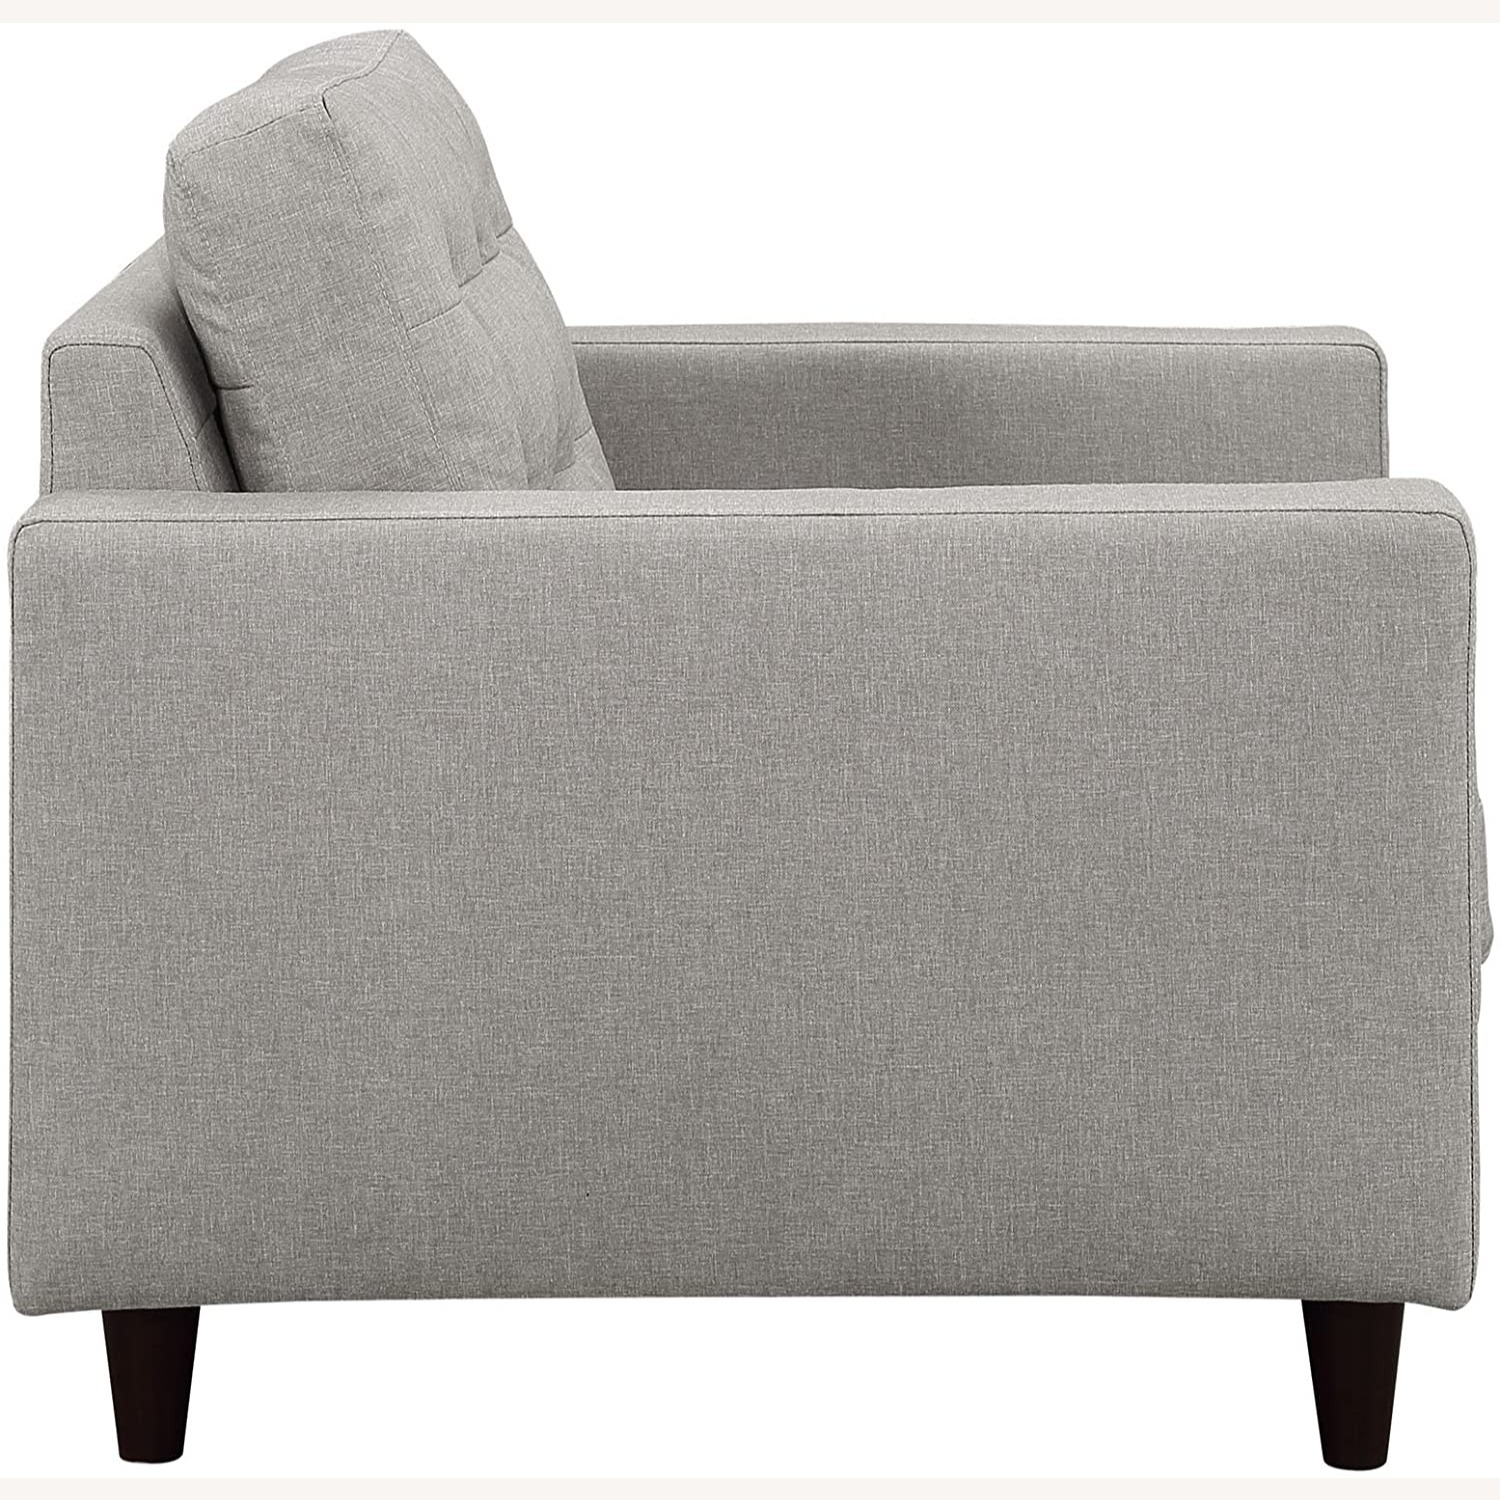 Armchair In Gray Upholstery W/ Tufted Buttons - image-2